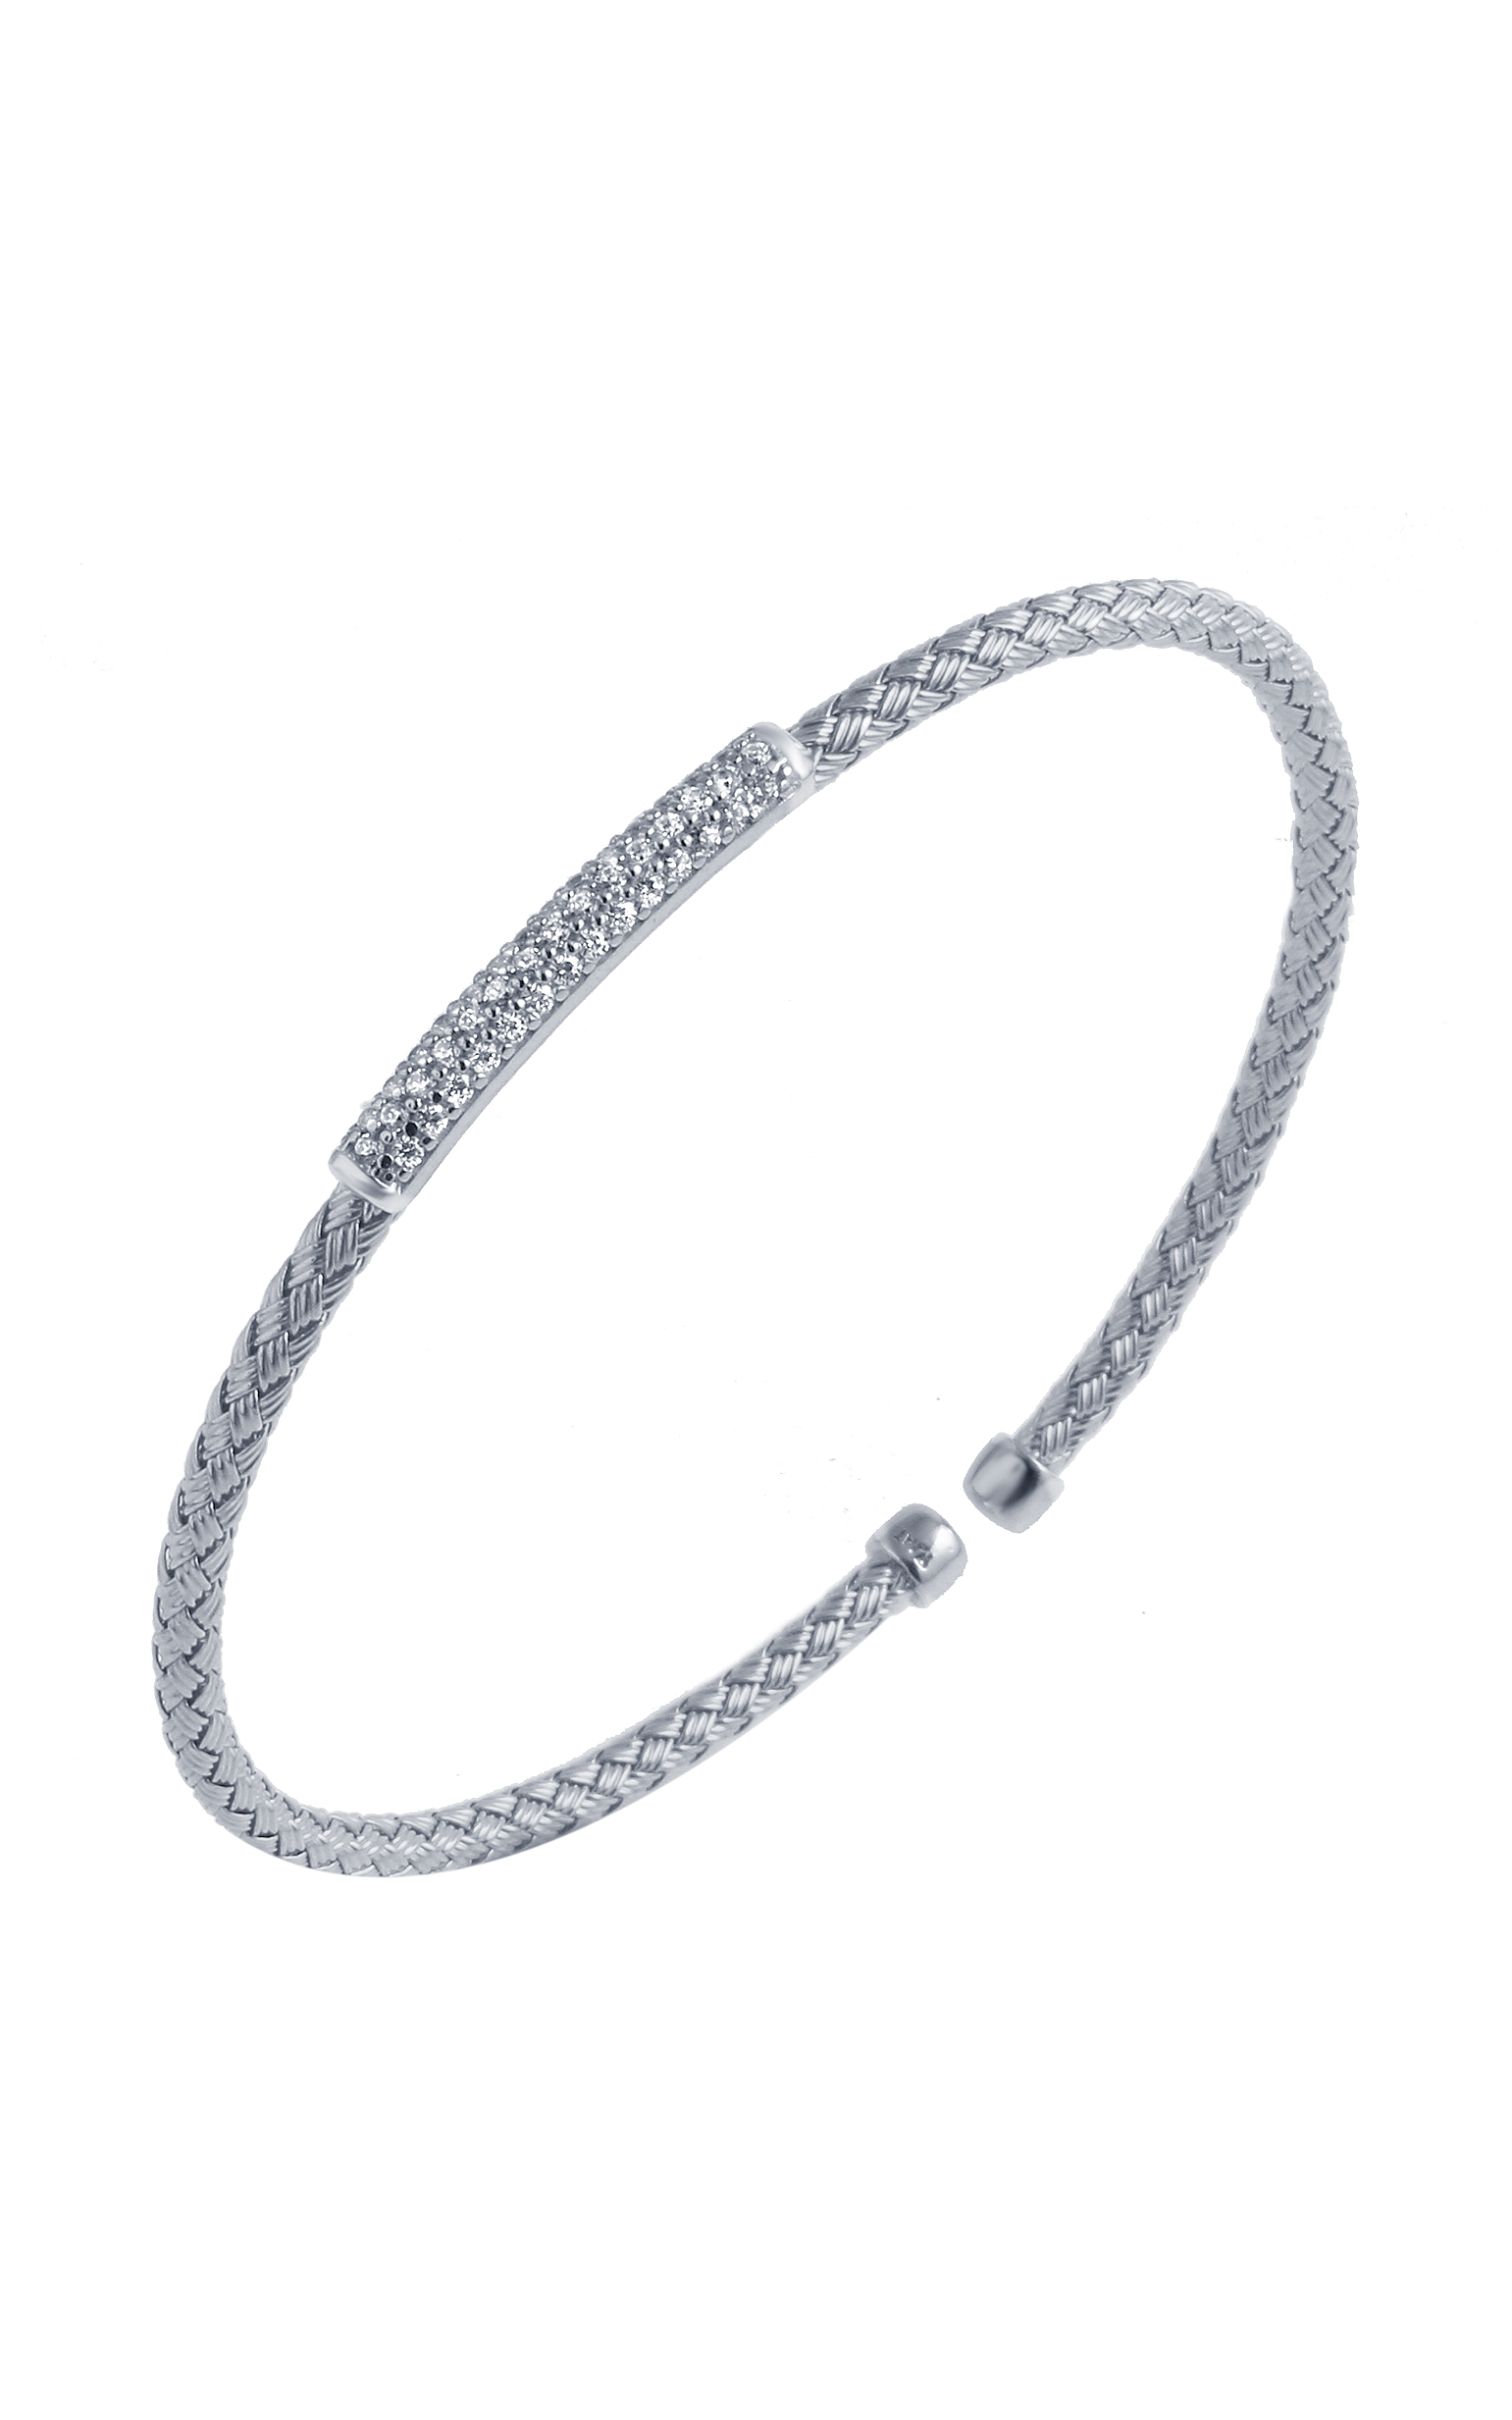 Charles Garnier Paolo Collection Bracelet MLC8001WZ product image